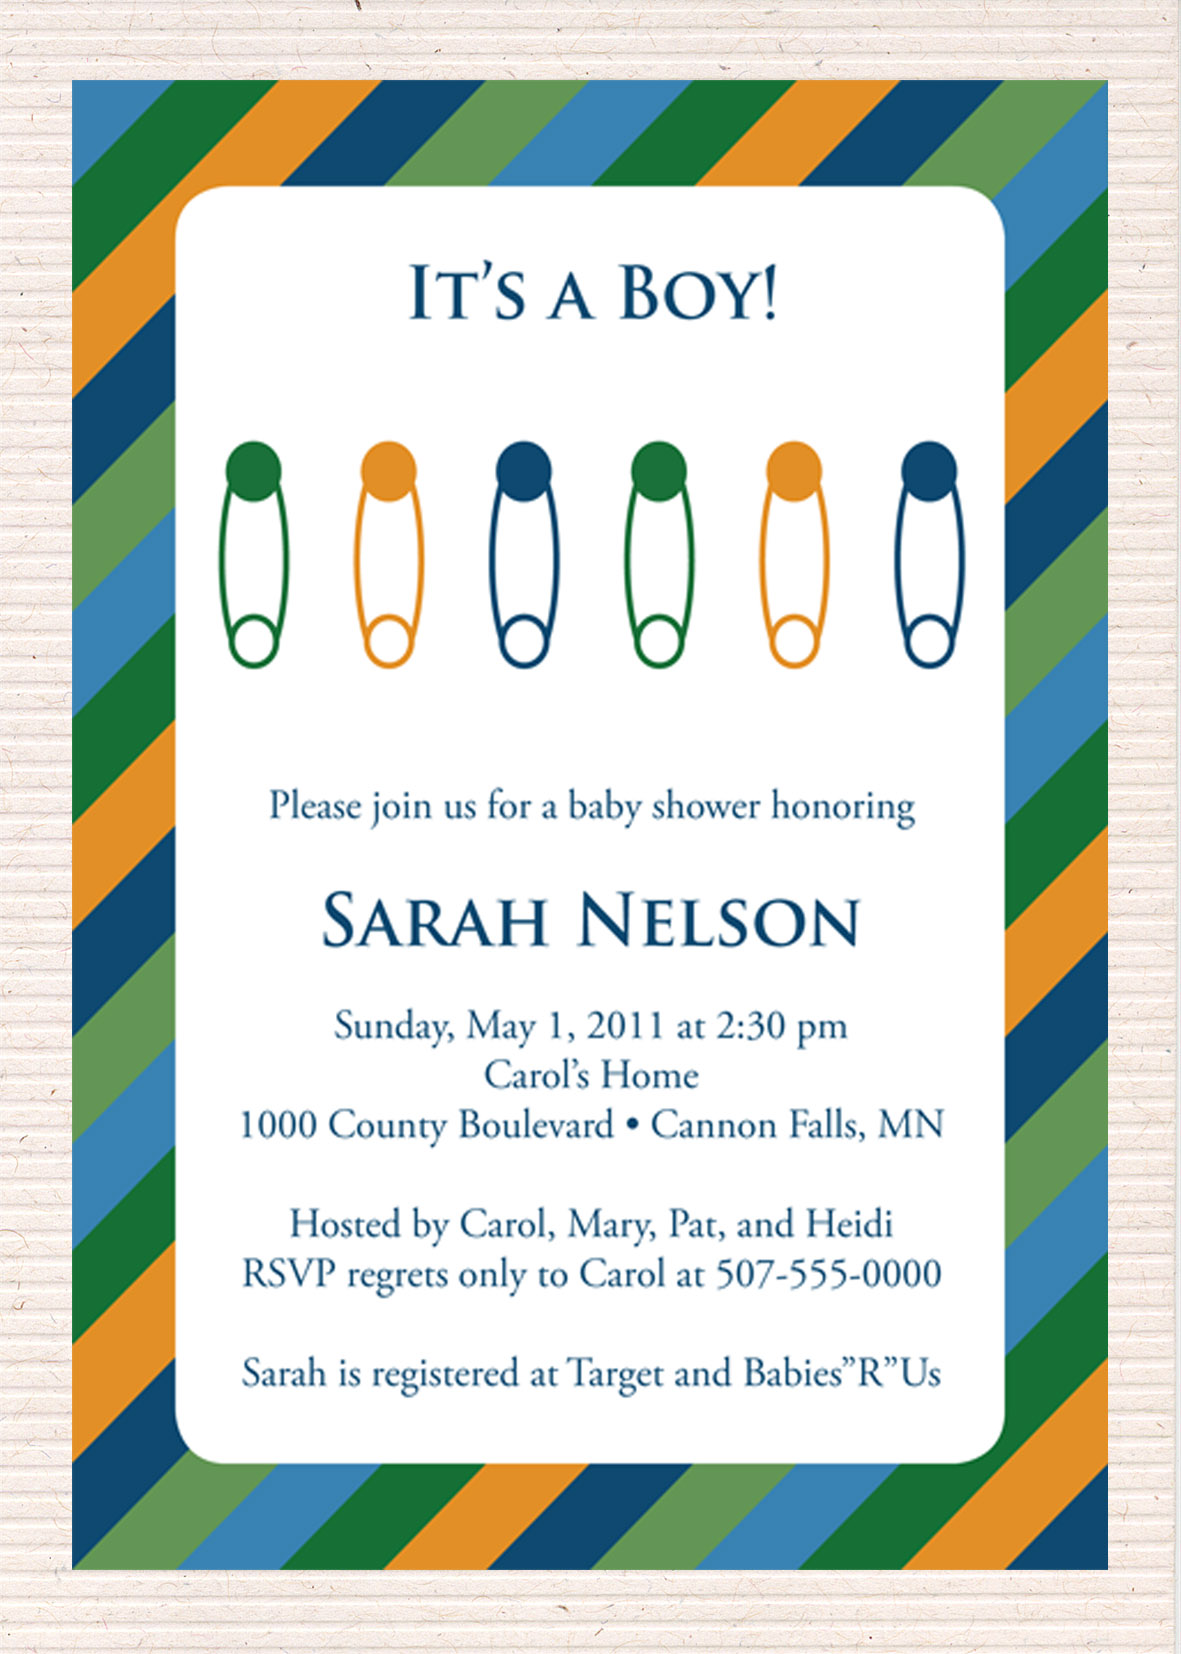 Outstanding Baby Boy Shower Invitations Wording Ideas 1181 x 1654 · 296 kB · jpeg